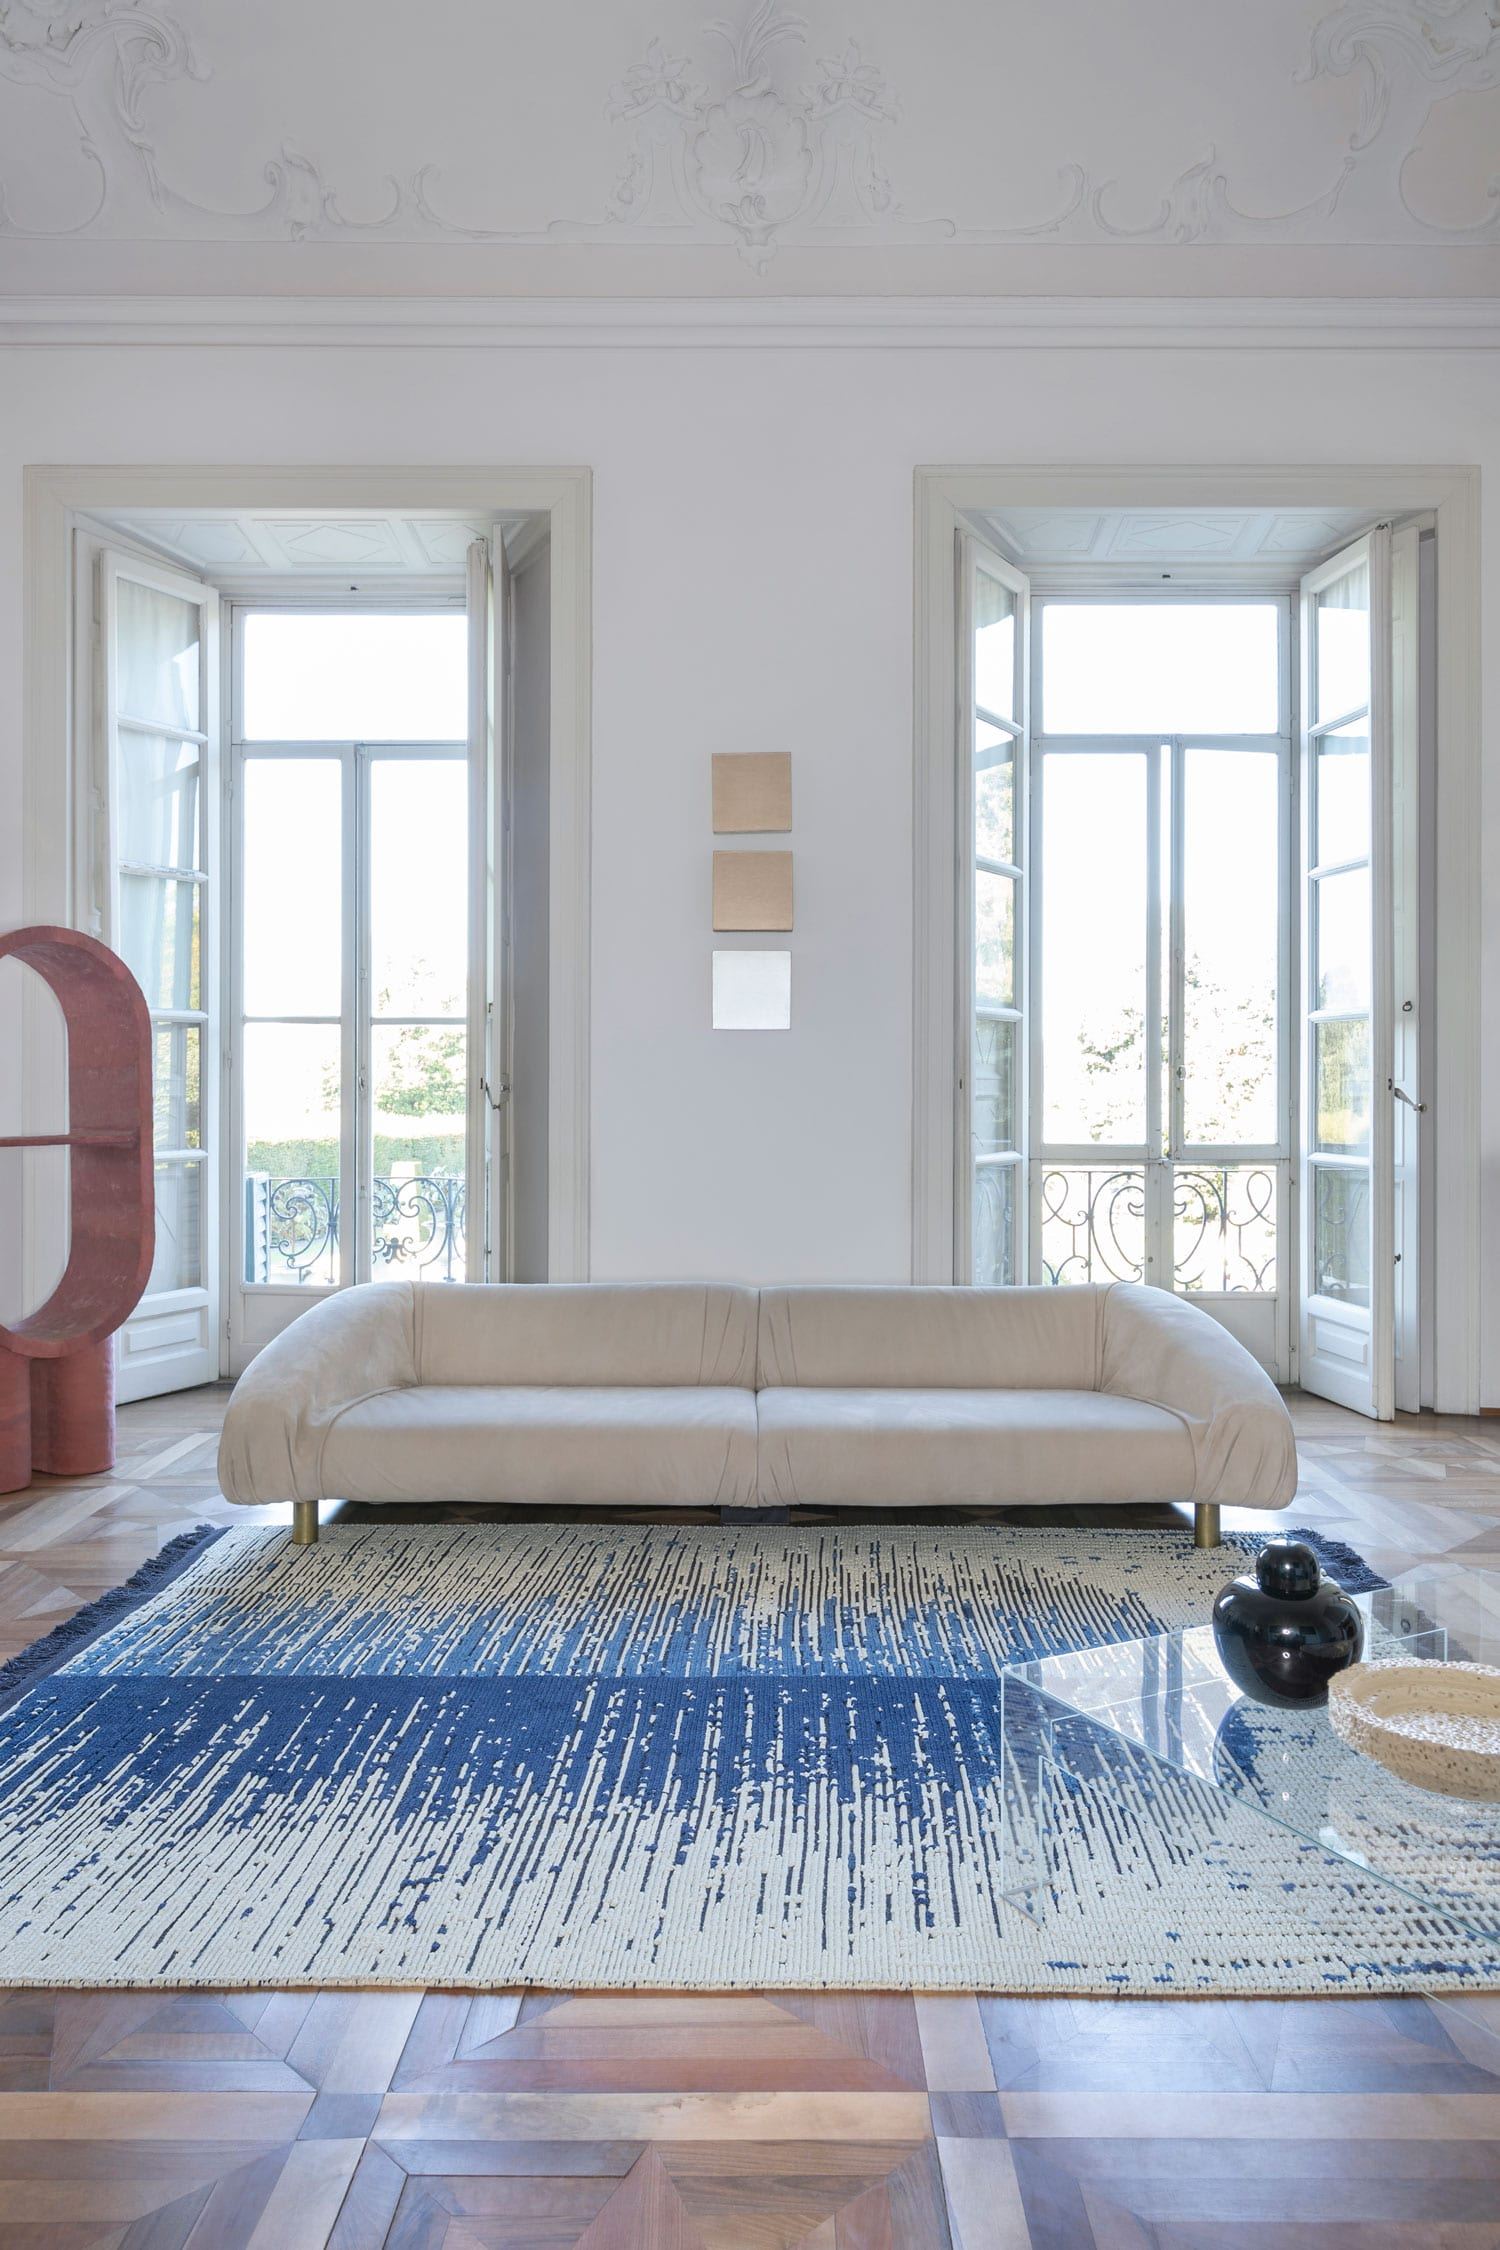 New Japan by Chiara Andreatti for CC Tapis Rugs | Yellowtrace